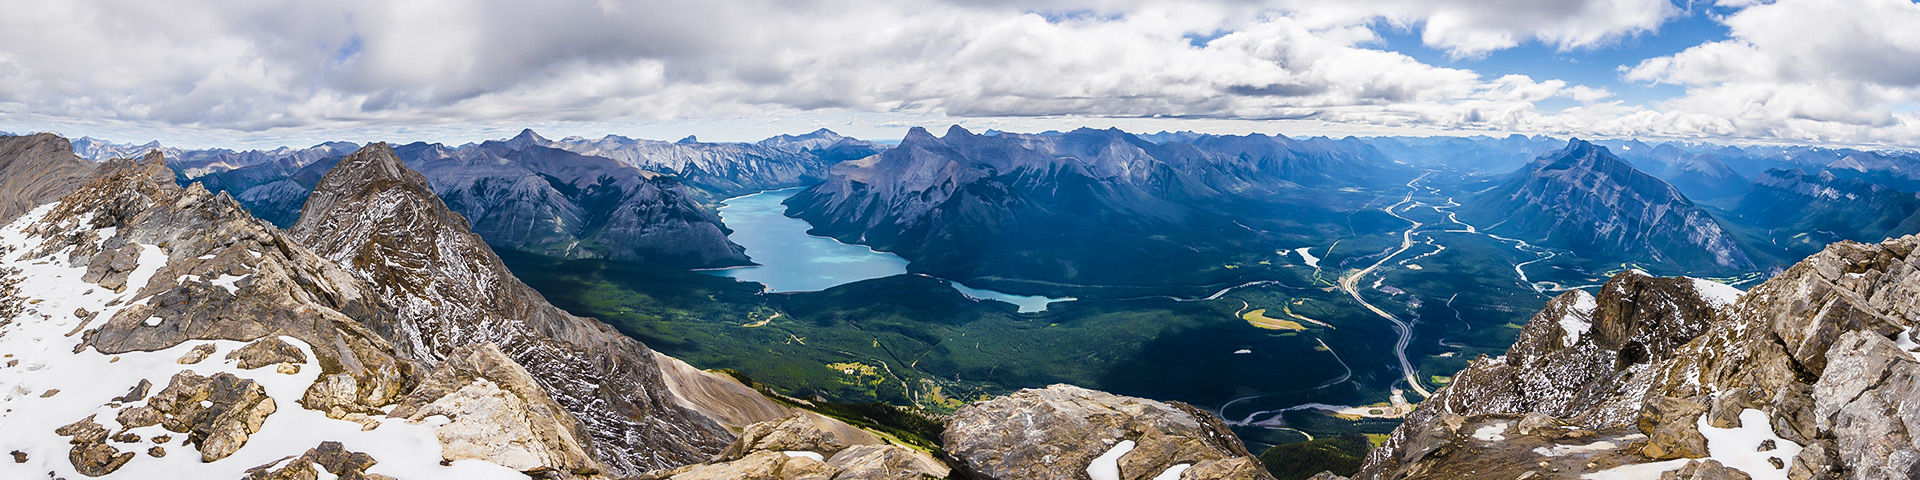 Panoramic view of Peyto Lake and Icefields Parkway on self-guided trekking tour